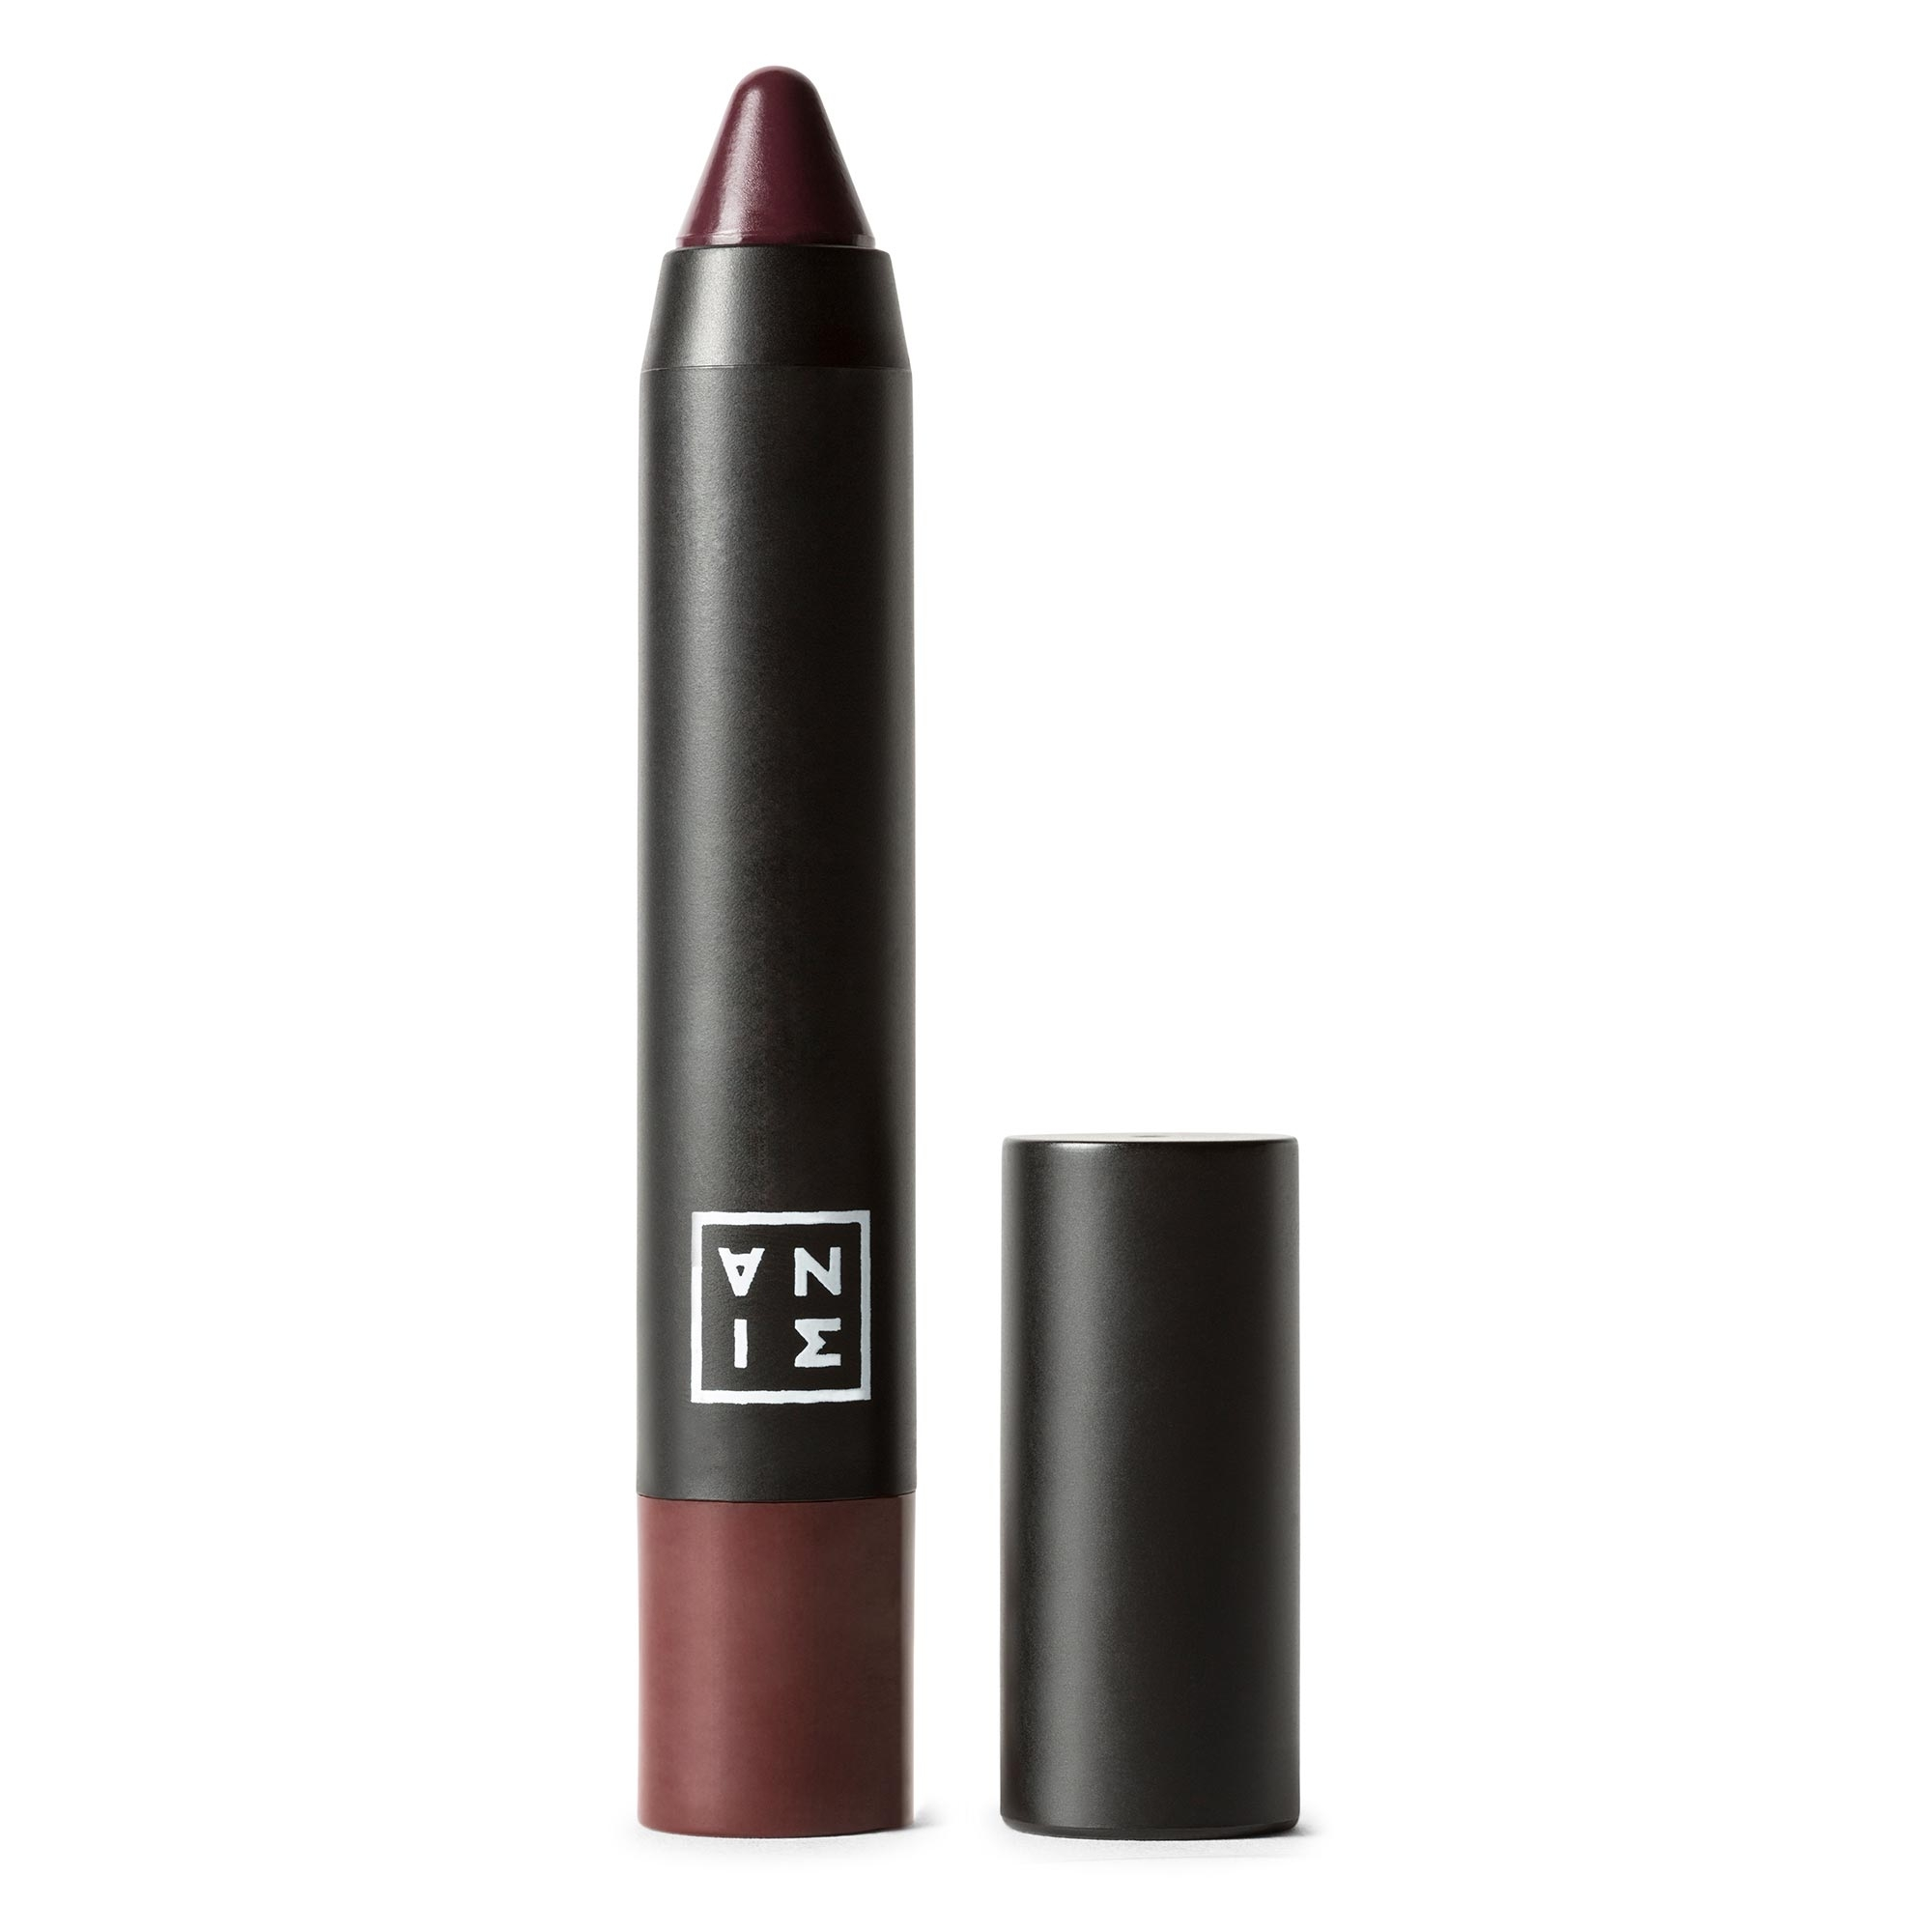 3INA Makeup | The Chubby Lipstick 116 Red